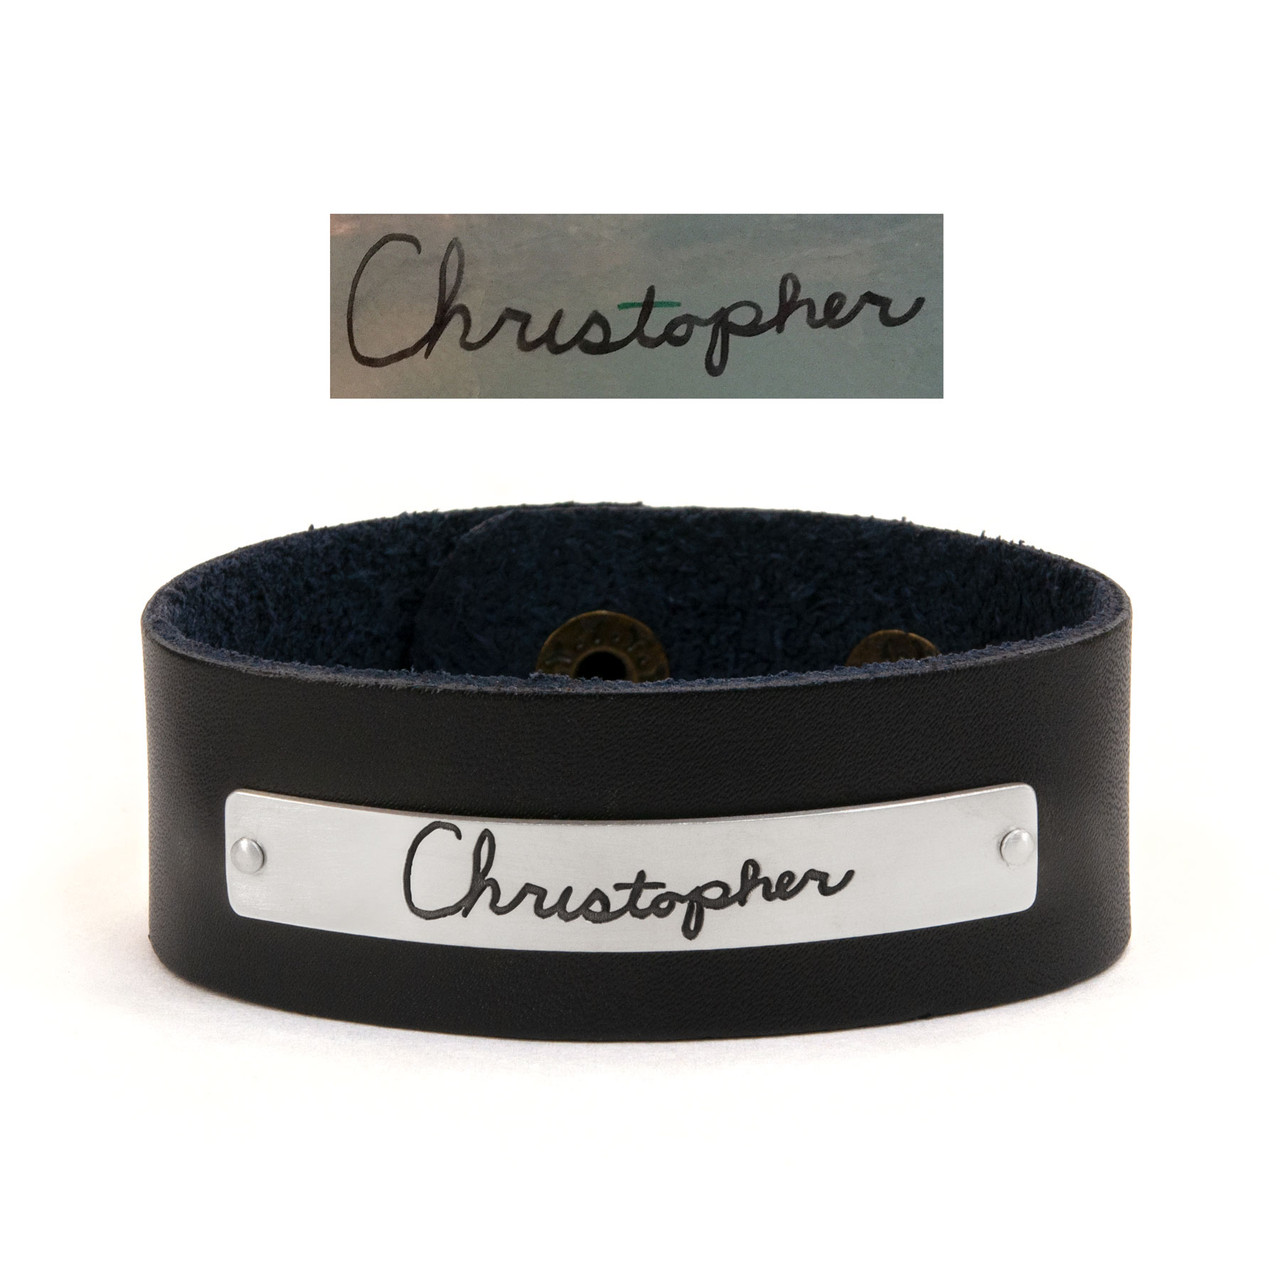 handwriting leather bracelet , shown with the actual handwriting etched on silver, with original handwritten note